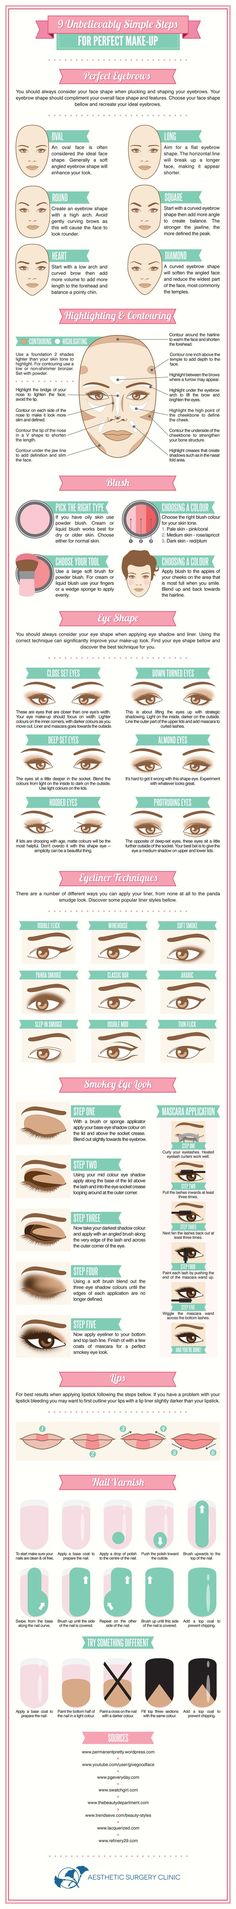 9 Unbelievably Simple Steps to Perfect Makeup #infographic